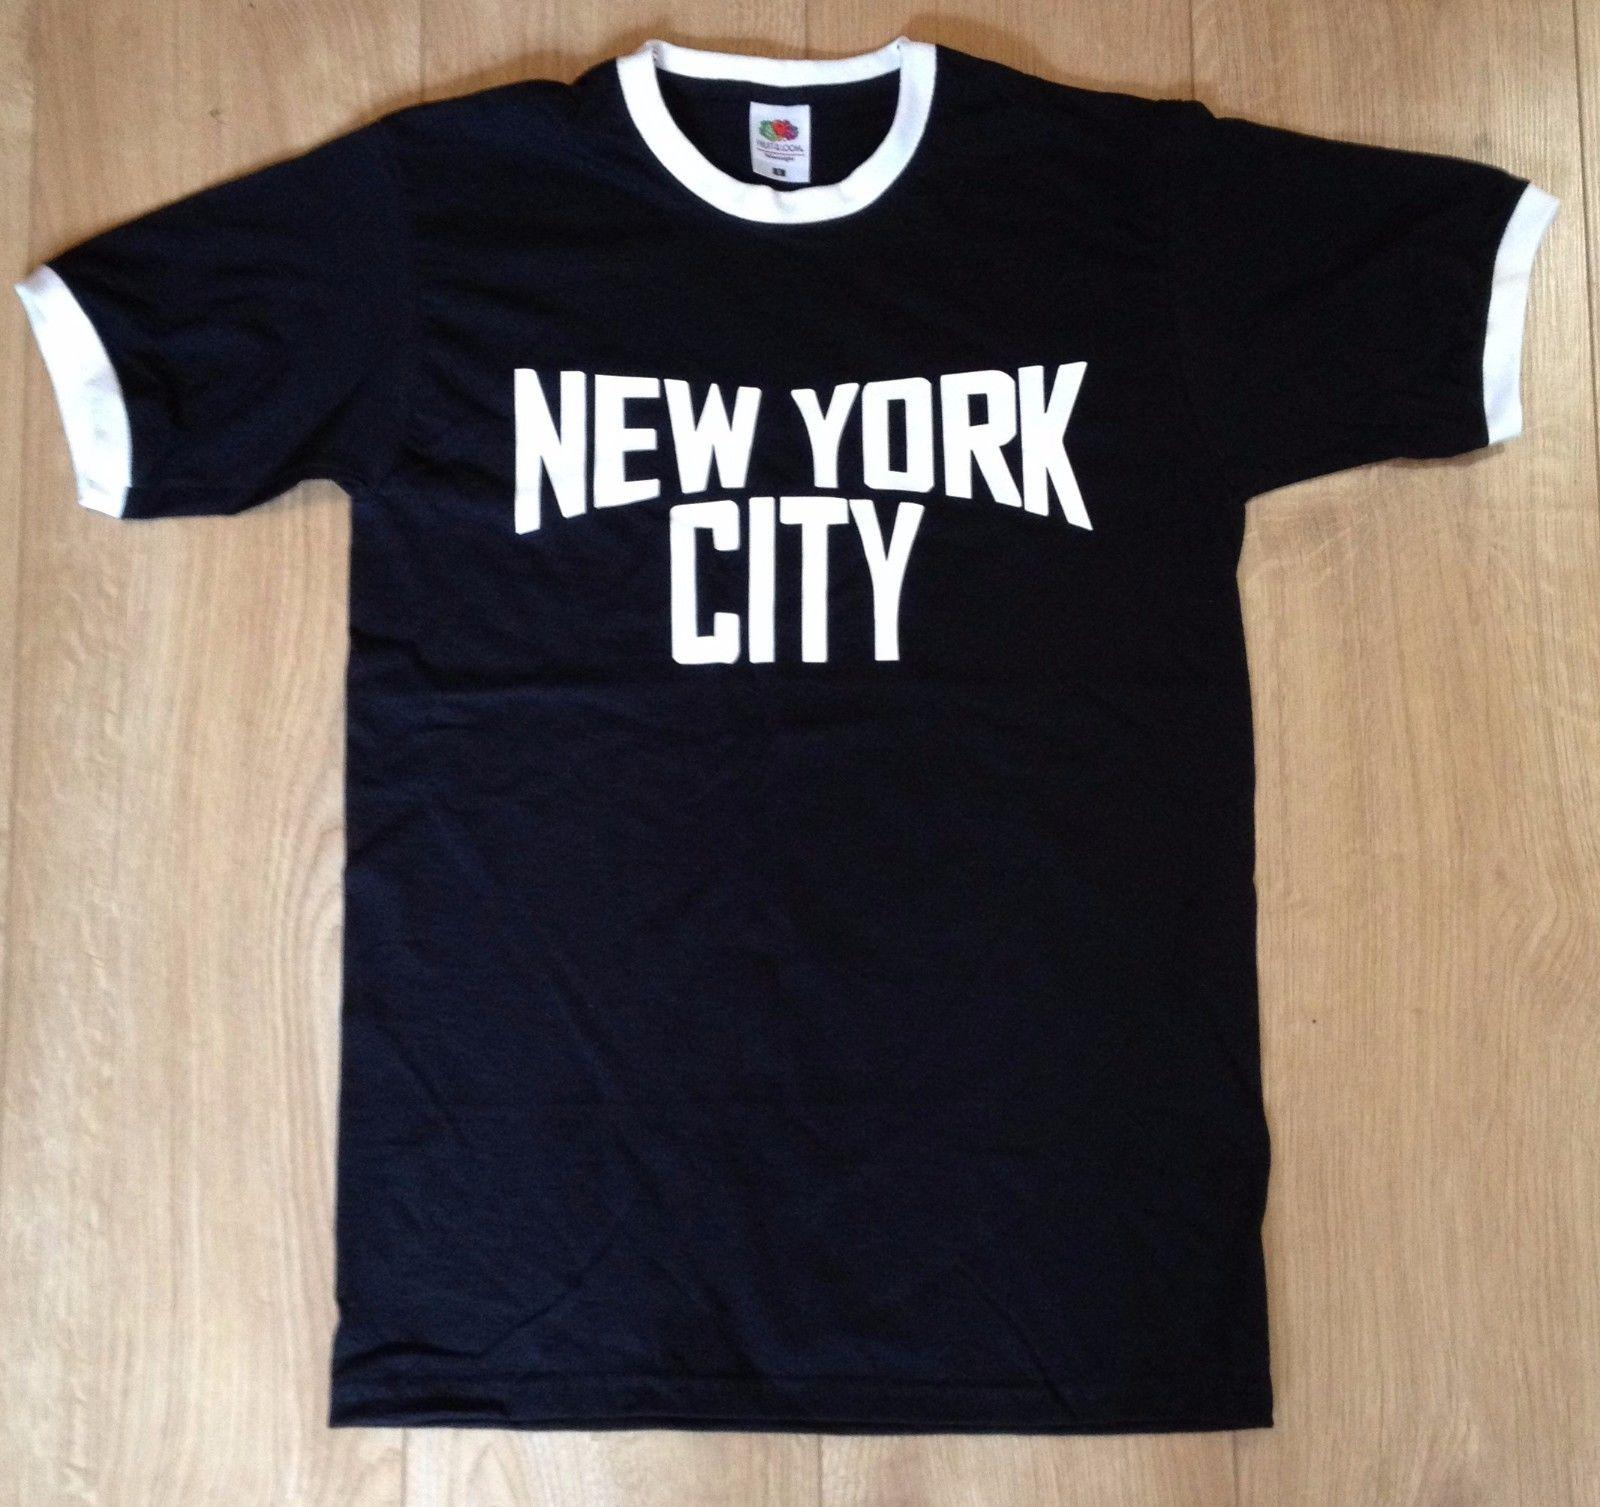 New York City Ringer T Shirt Retro John Lennon Classic Music Imagine Black  Cotton Low Price Top Tee For Teen Boys Newest 2018 Fashion Online T Shirt  Buy ... 6ad9cacb328